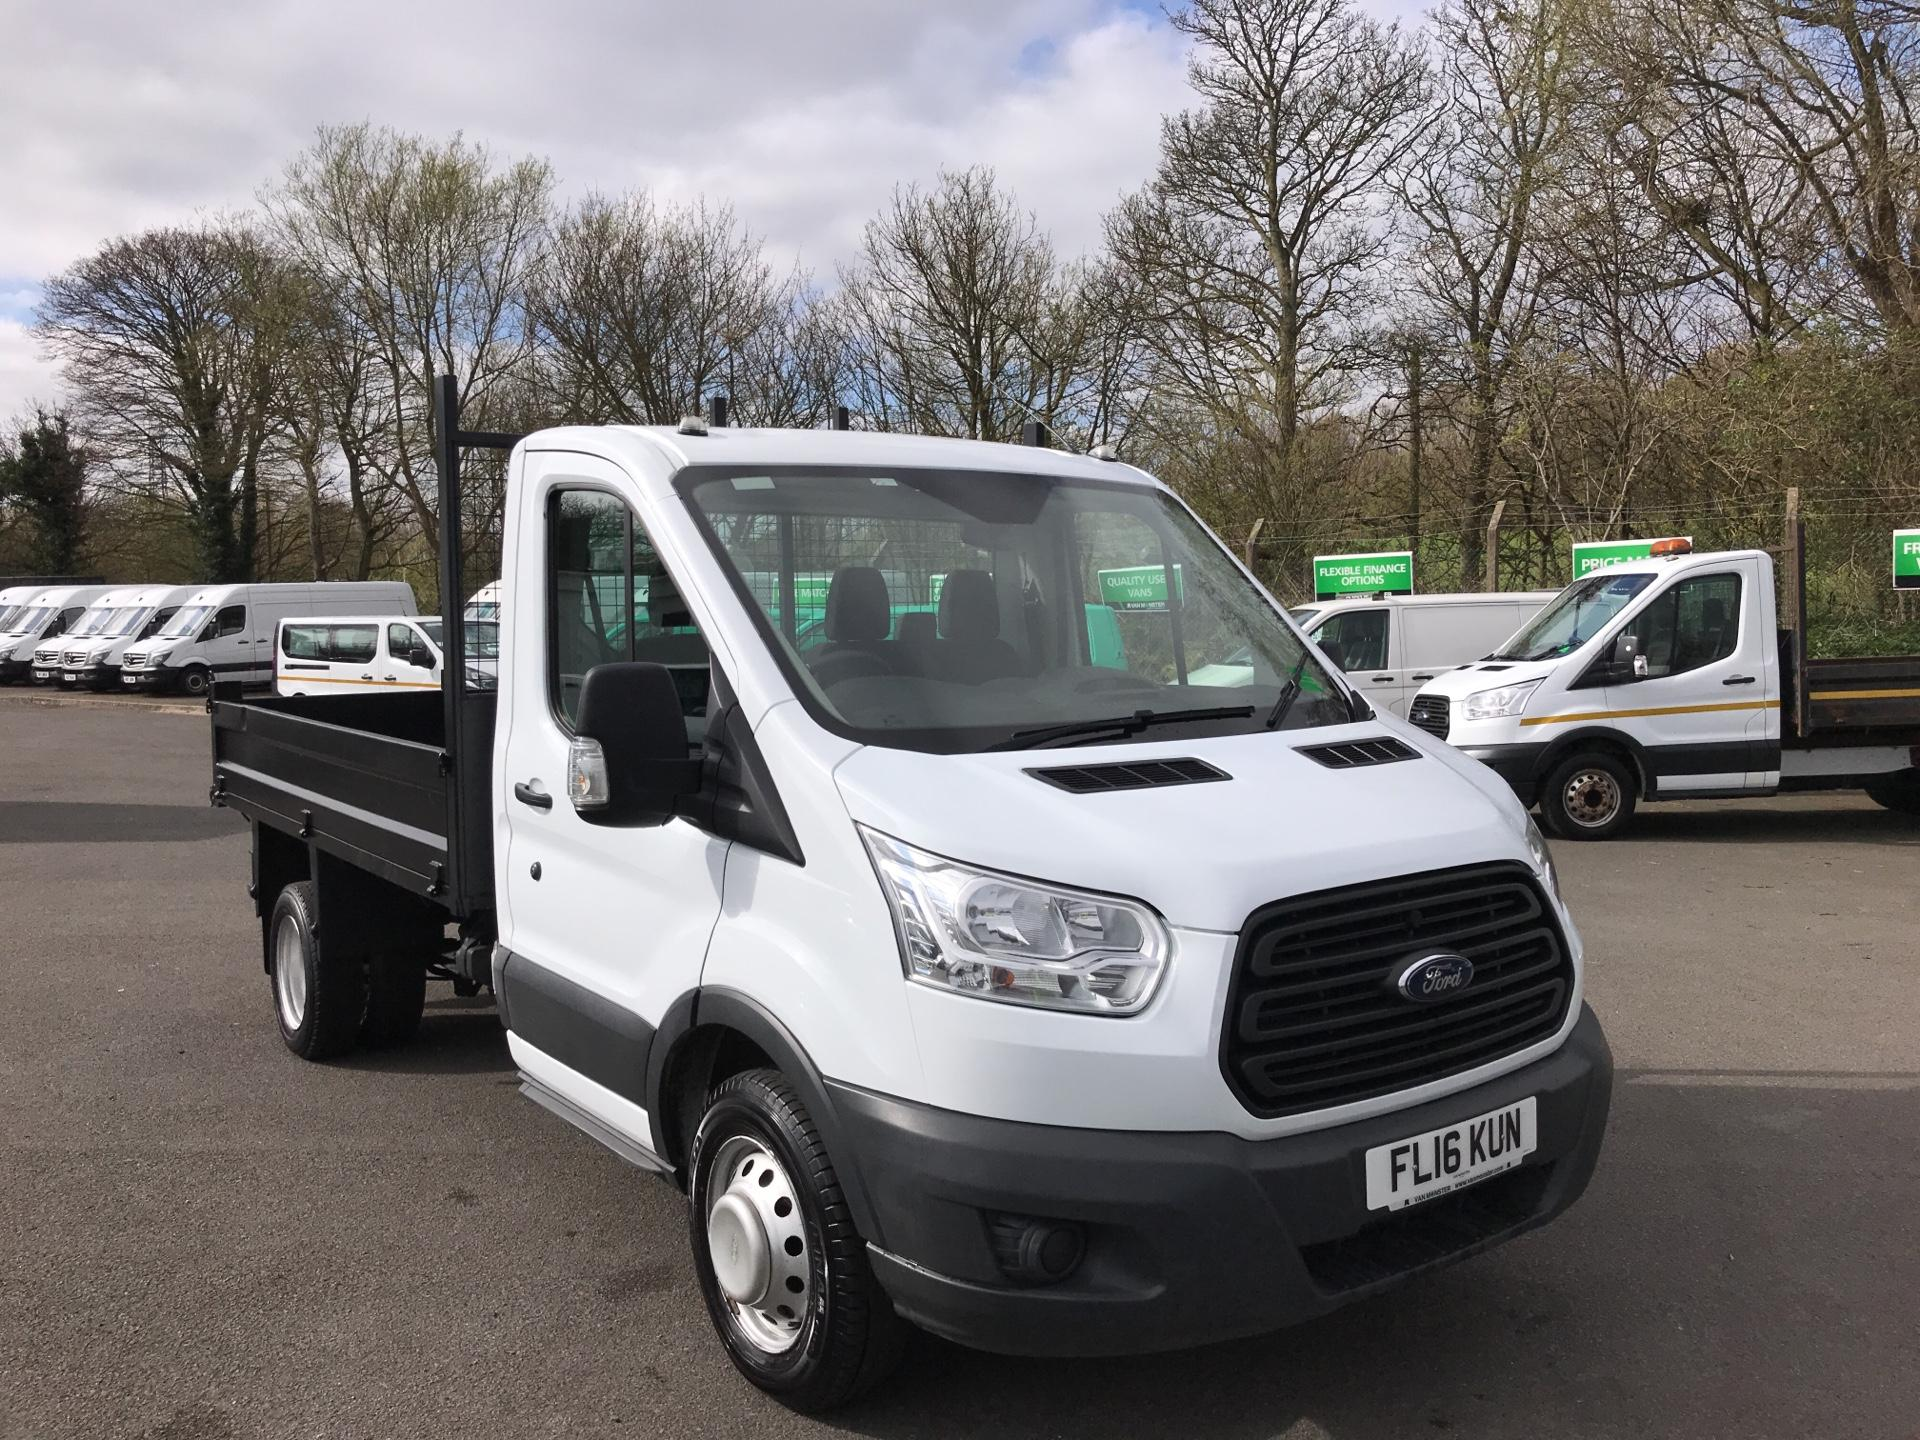 2016 Ford Transit  350 L2 SINGLE CAB TIPPER 125PS EURO 5 (FL16KUN)